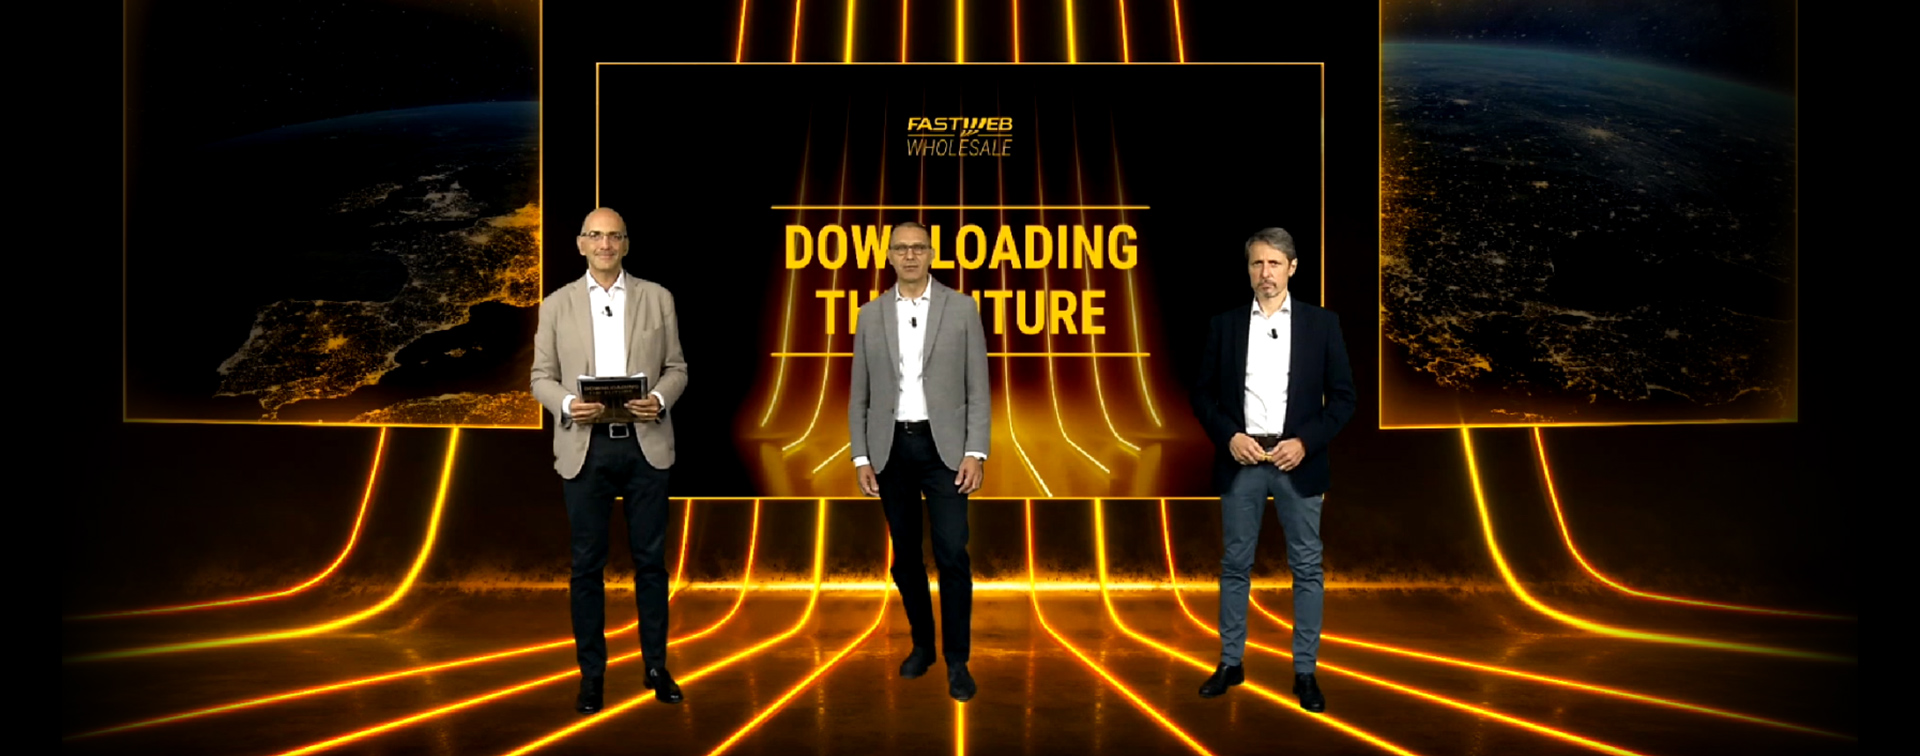 Downloading the Future - Wholesale Customer Event 2020